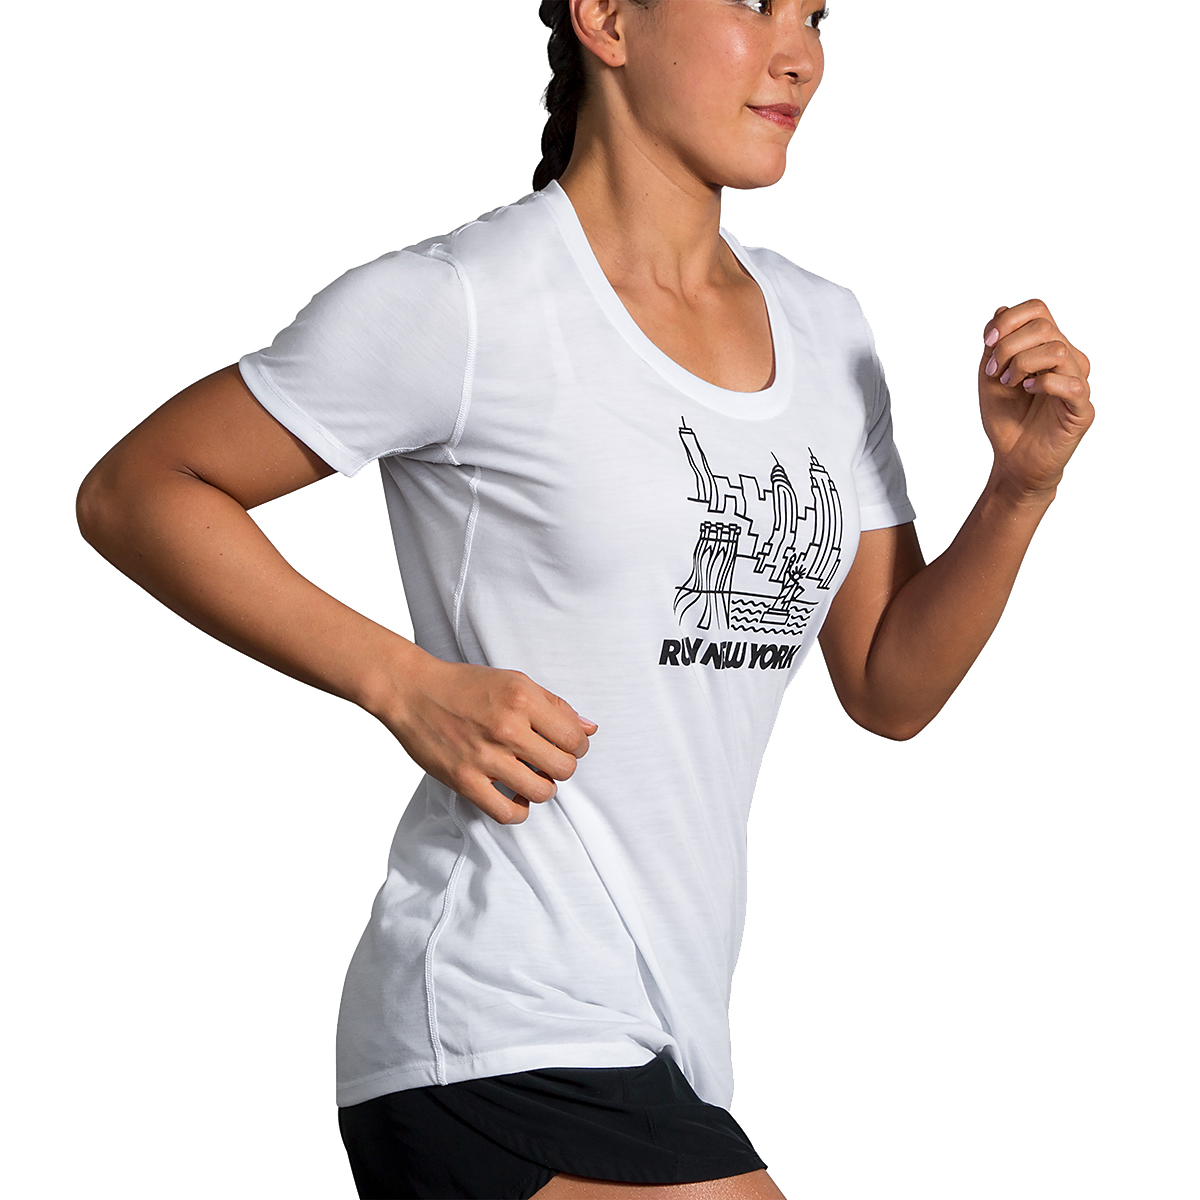 Women's Brooks Distance Graphic Tee - Color: White/Run Nyc - Size: XS, White/Run Nyc, large, image 2